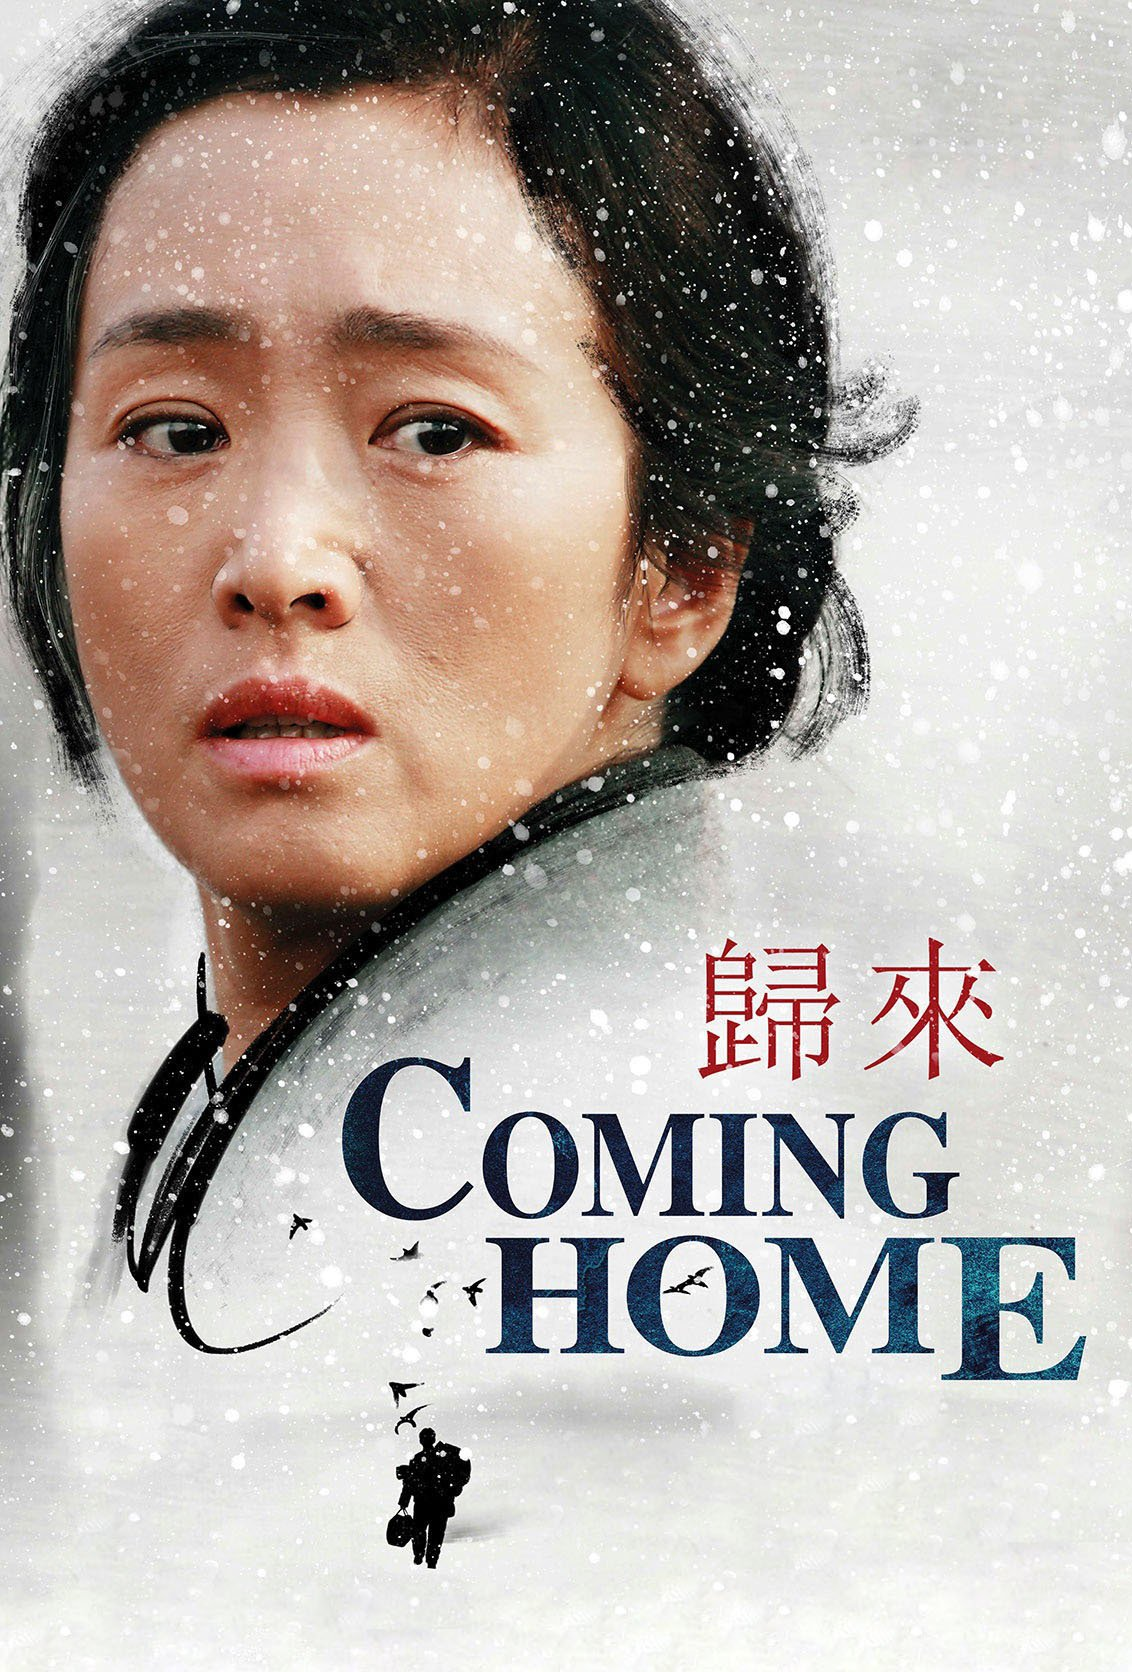 coming-home-movie-2380642